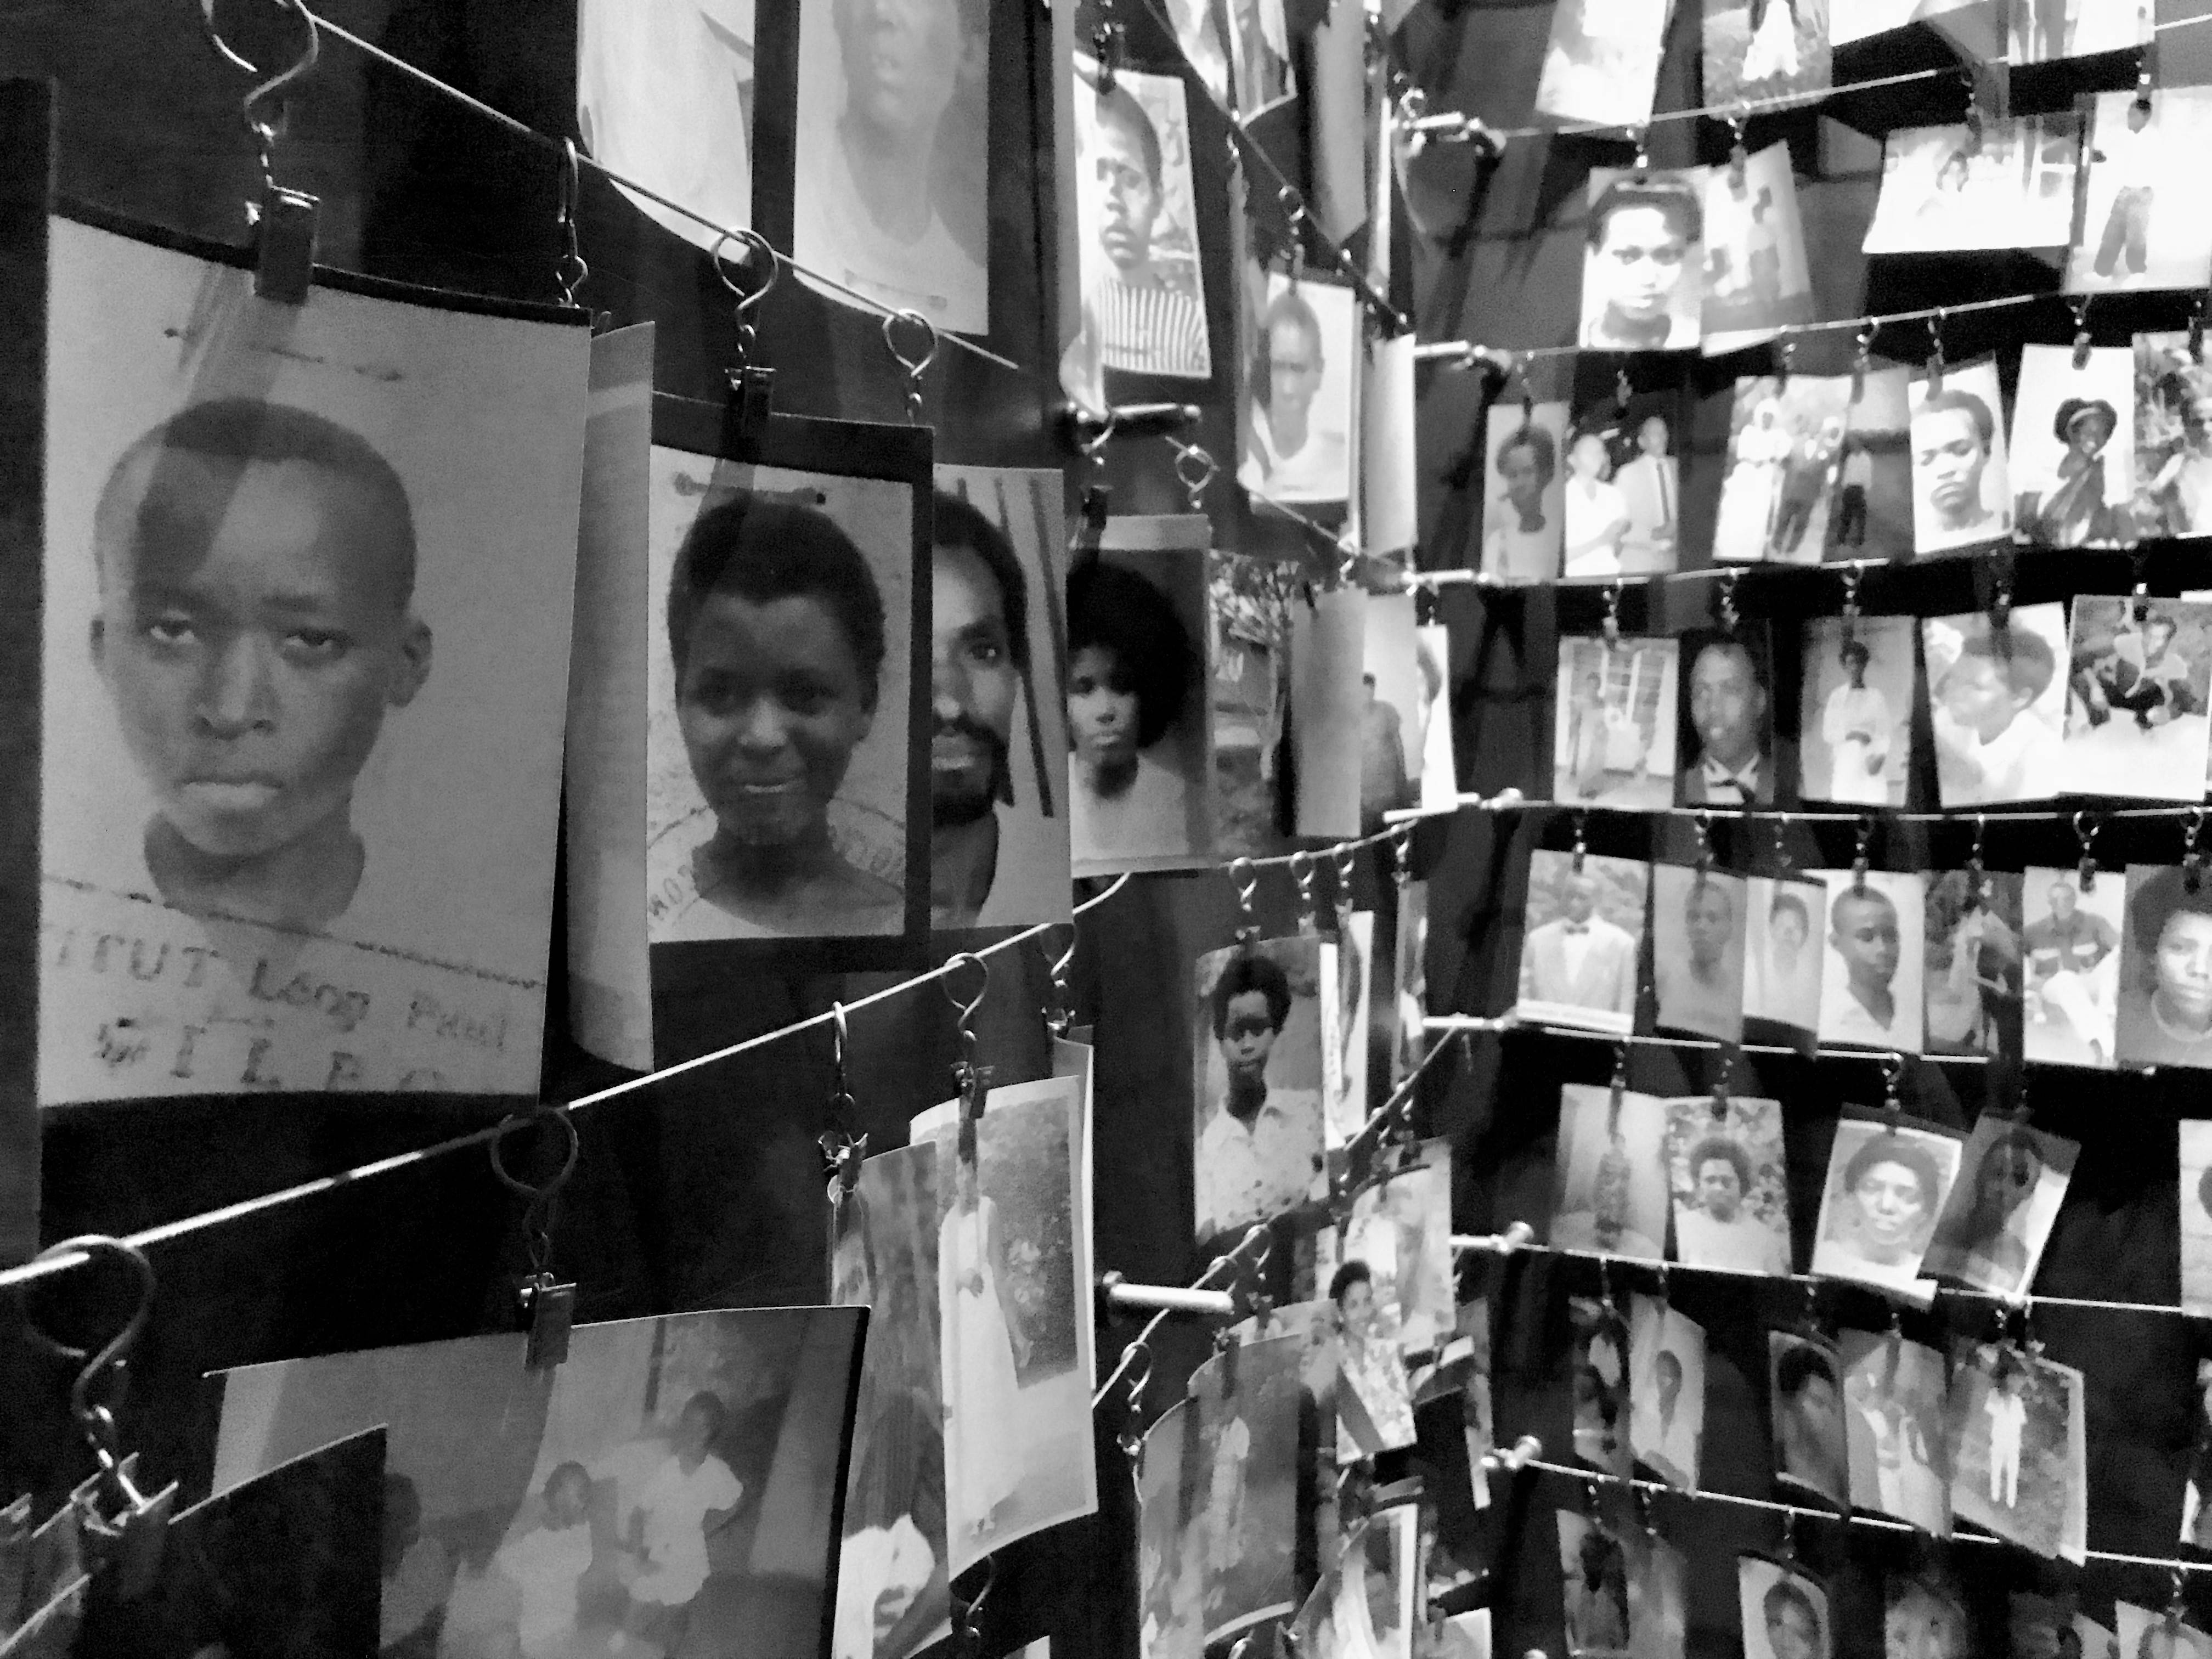 The Rwandan Genocide resulted in the deaths of over a million people & the survivors have to endure the pain of their trauma forever. While in Kigali, be sure to visit the Kigali Genocide Memorial to educate oneself about this terrible atrocity in recent history and to ensure that history doesn't repeat itself...again. Read more at www.thefivefoottraveler.com